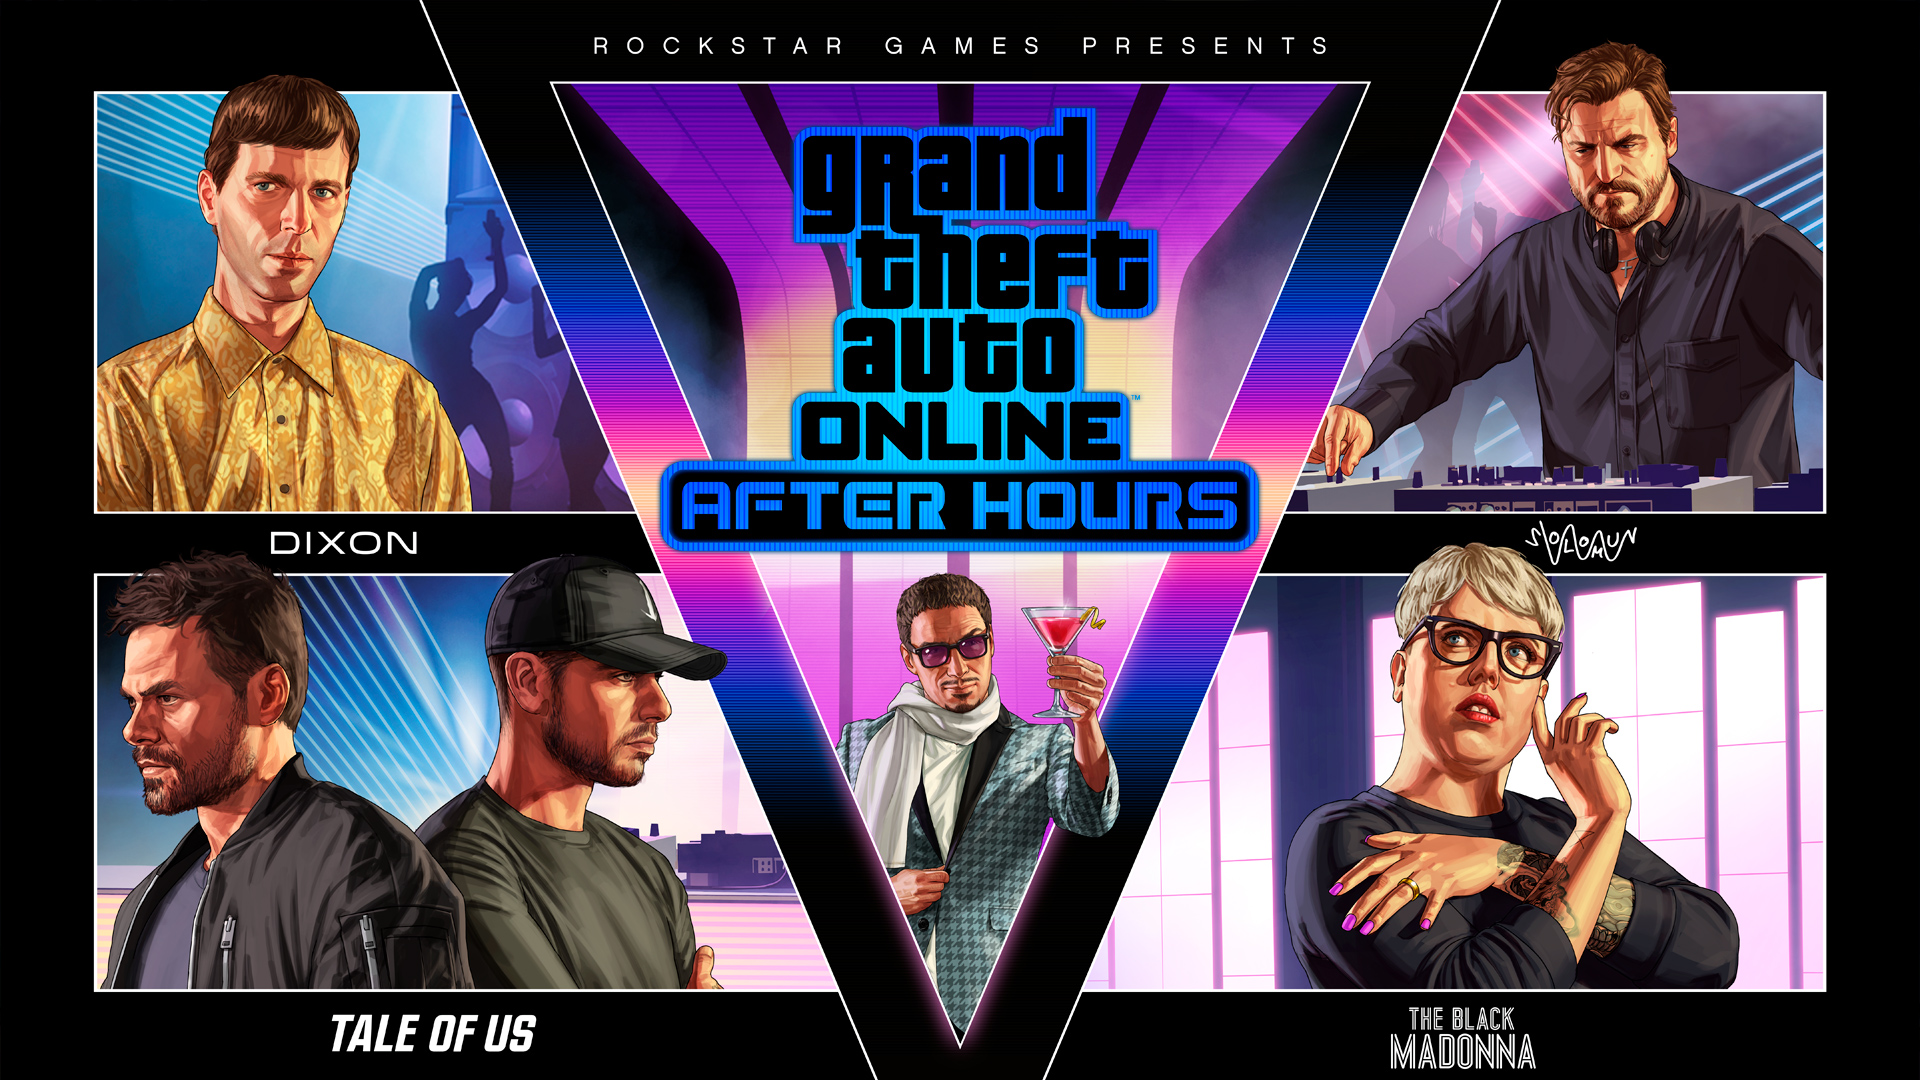 Download patch 1 0 1493 0 «After Hours» for GTA 5 Online